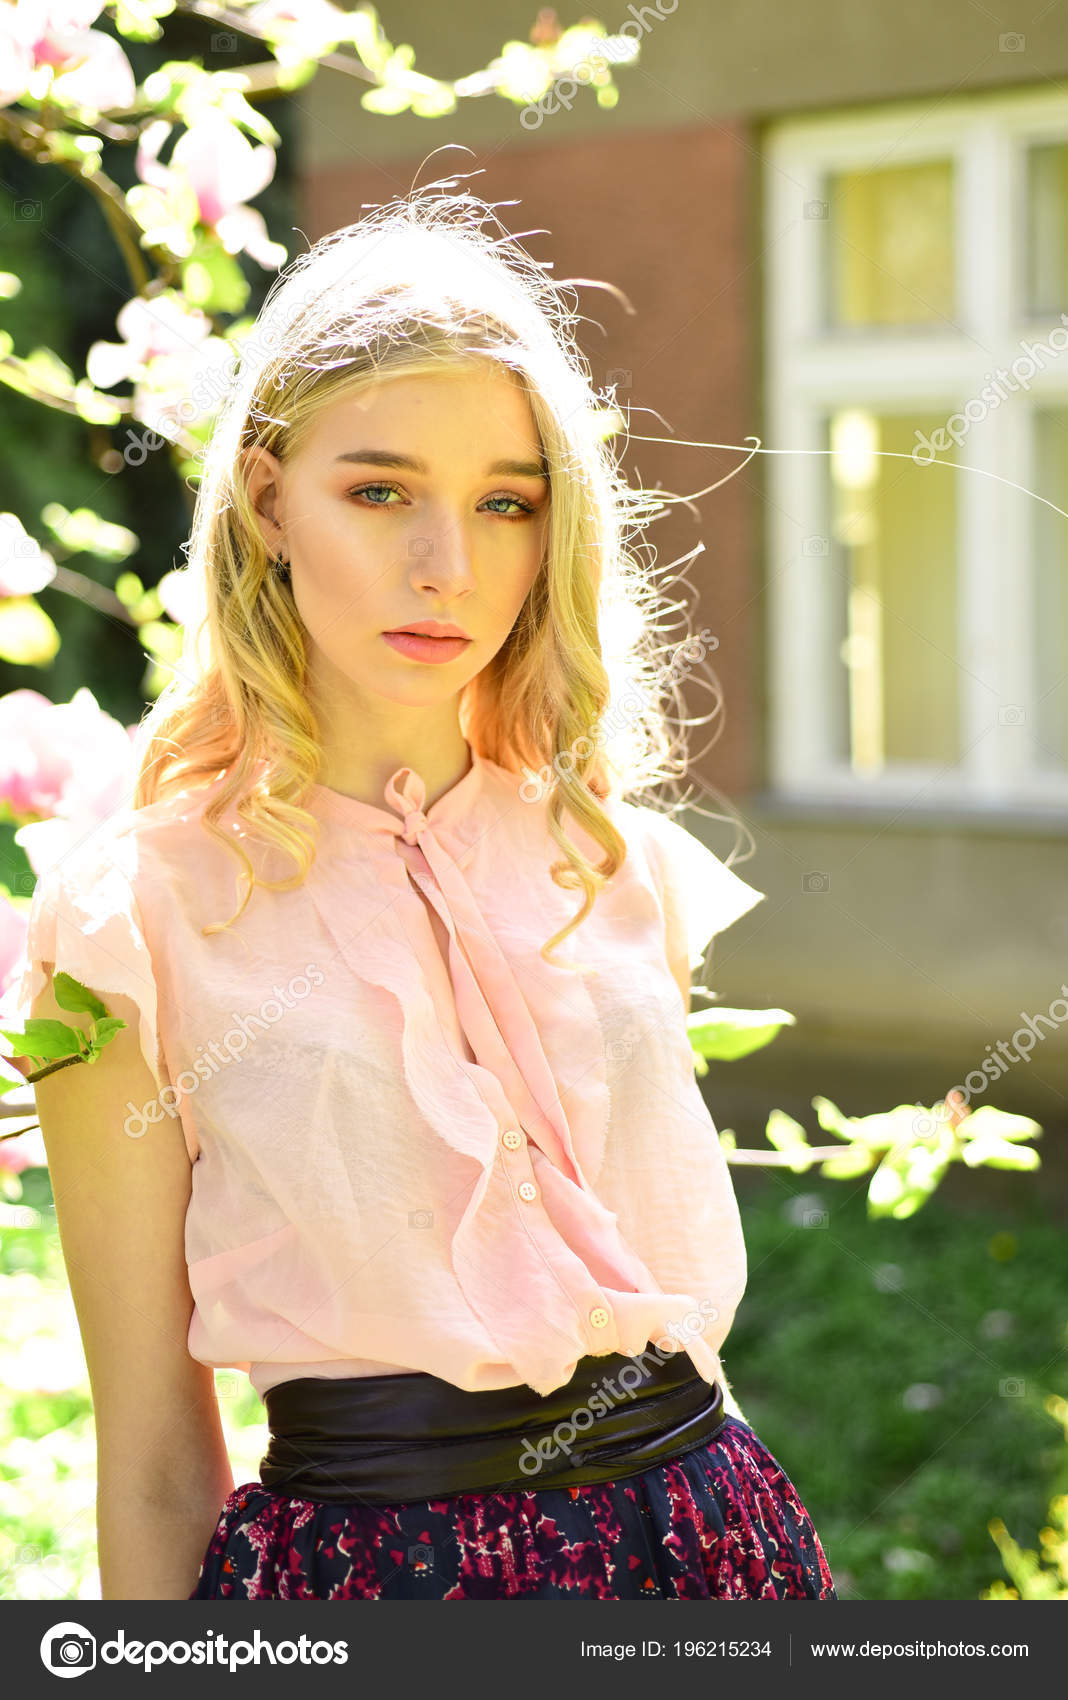 ef4d21a3c1791 Pretty Blond Girl Pink Blouse Relaxing Blooming Garden Sunny Day — Stock  Photo